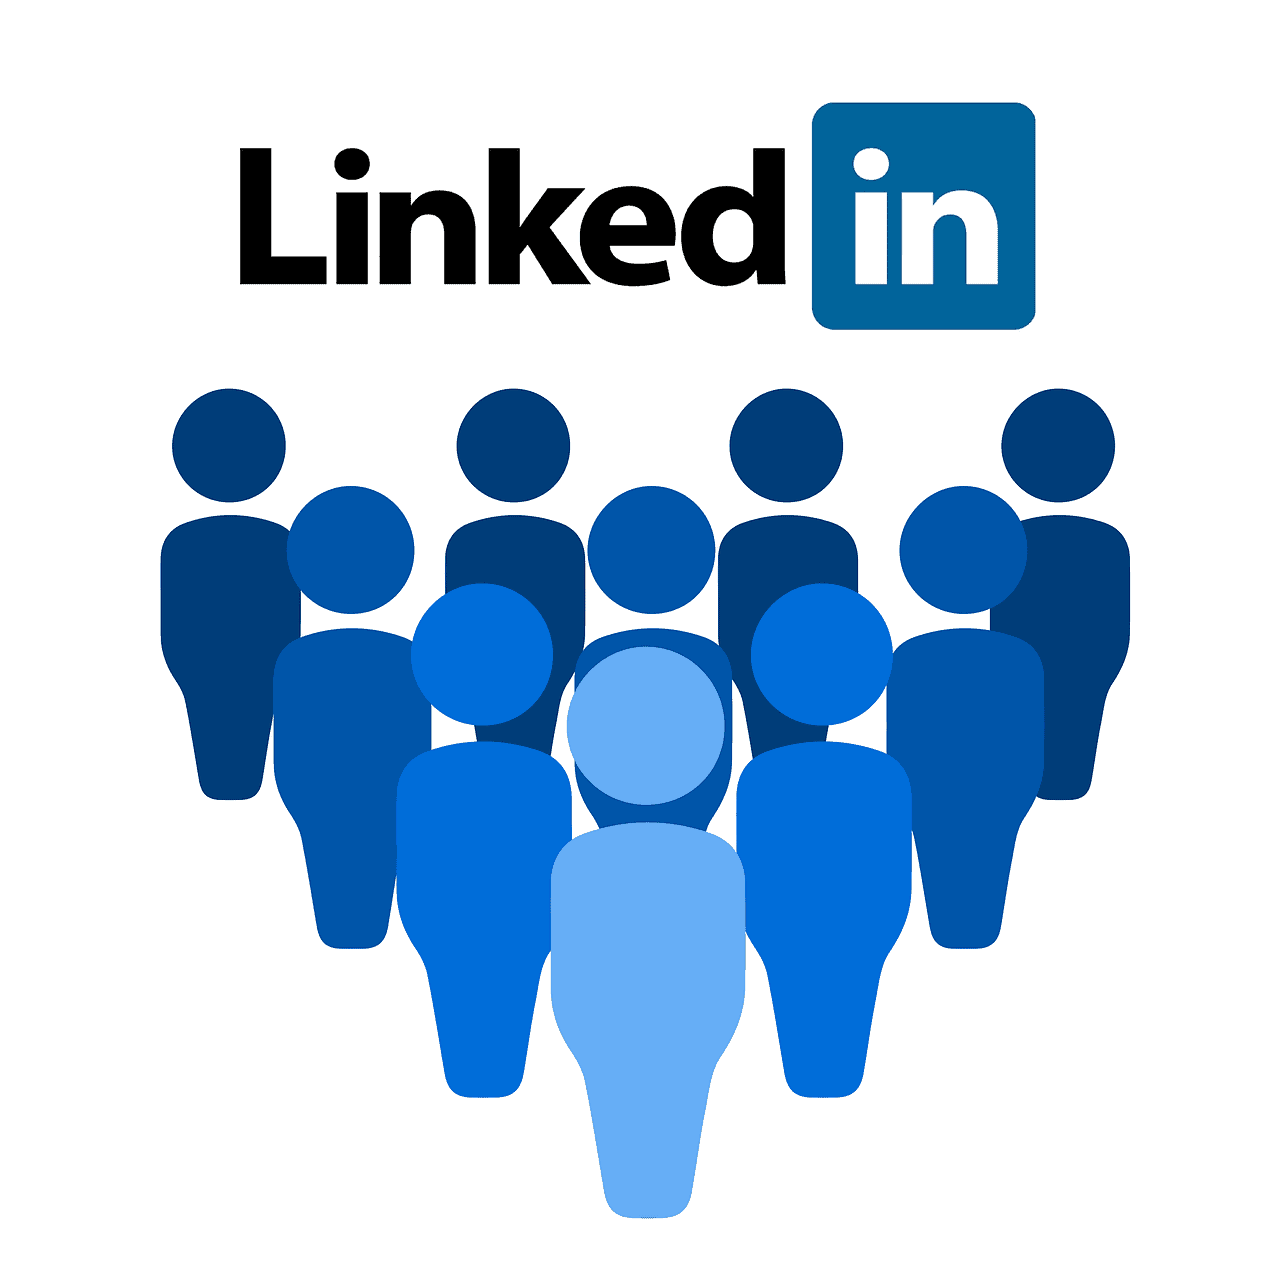 6 Vital tips to promote yourself on LinkedIn